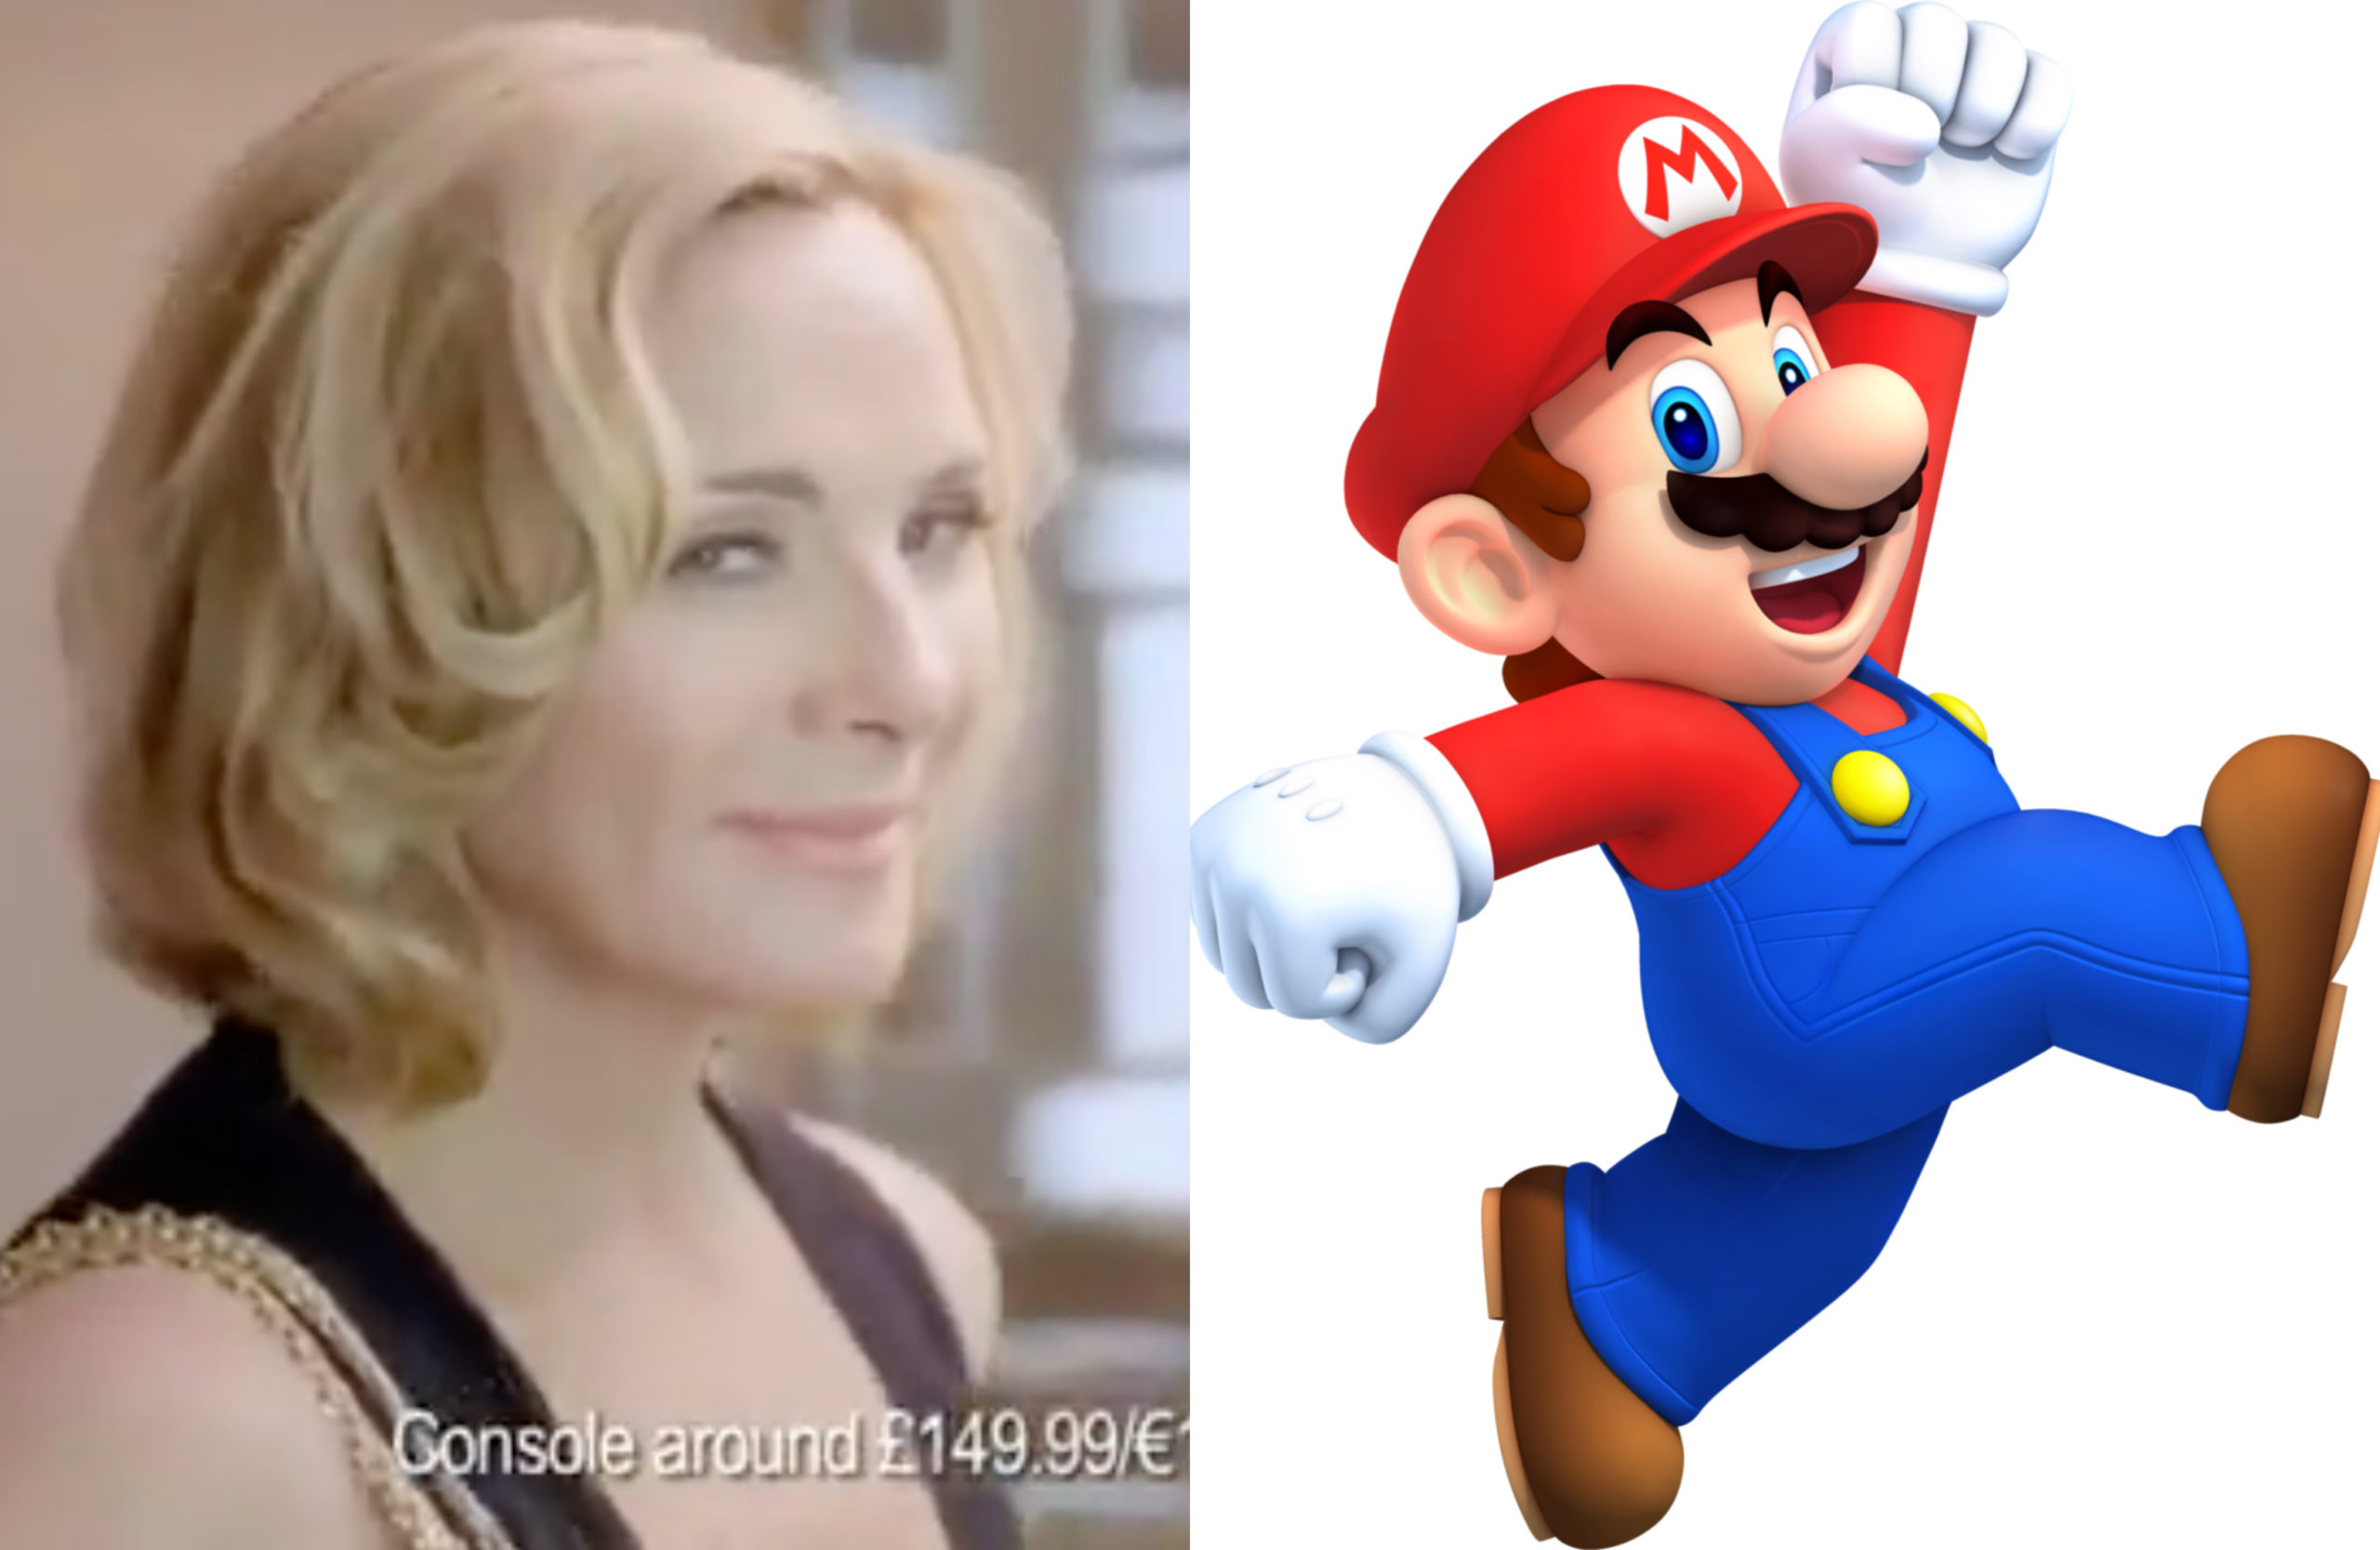 That feeling when: You find time for Mario. Kim Cattrall commented on a resurfaced Nintendo advert and things are getting kinda weird fast. (Screen capture via YouTube/Nintendo)